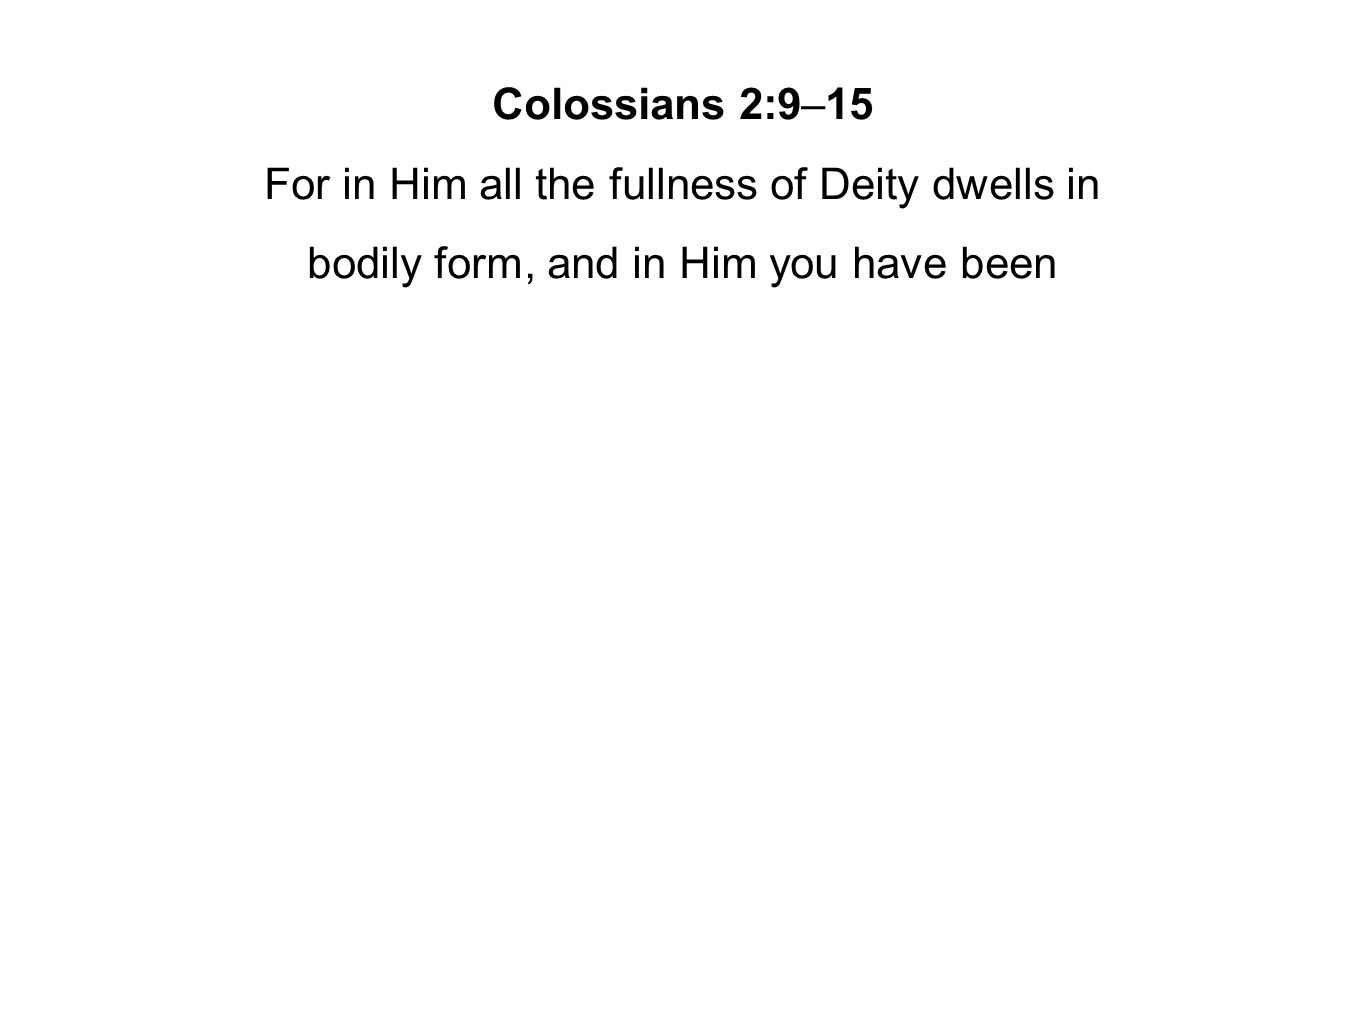 Colossians 2:9–15 For in Him all the fullness of Deity dwells in bodily form, and in Him you have been